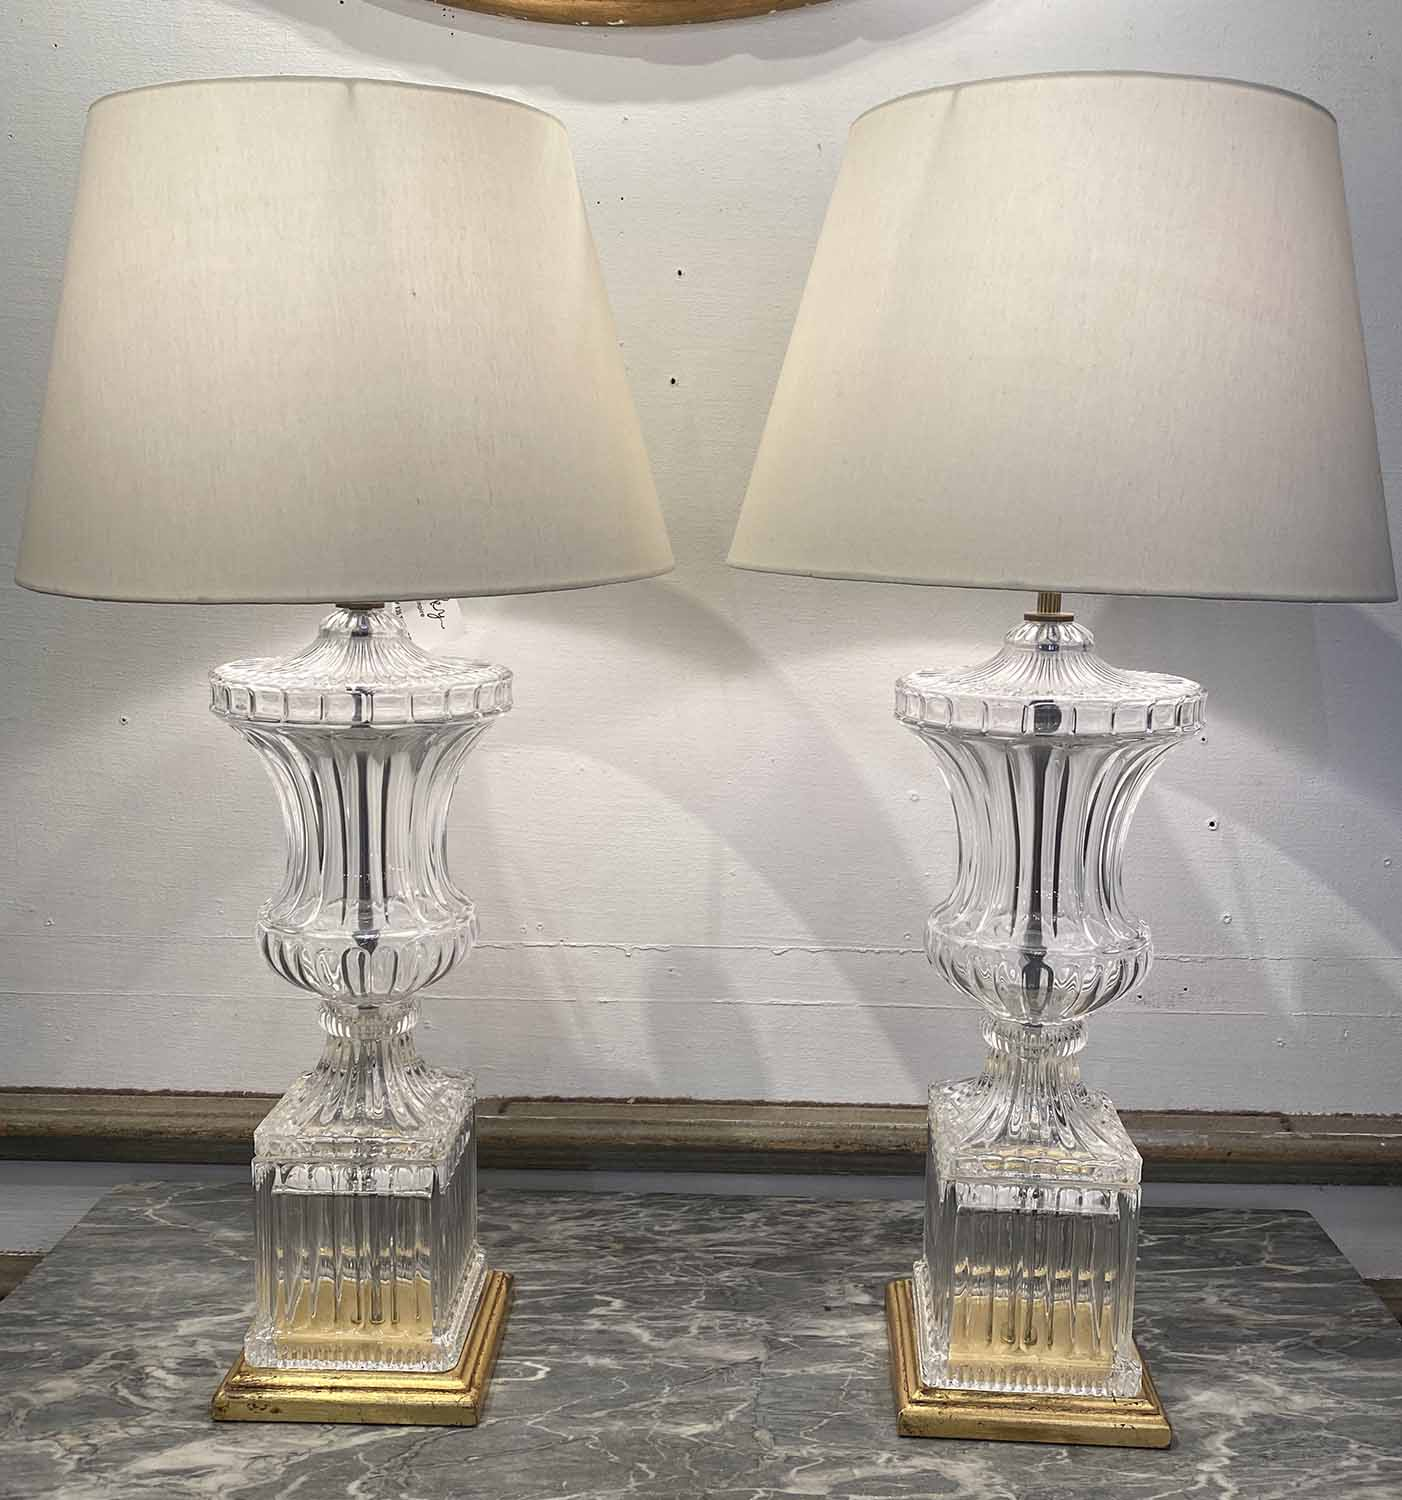 TABLE LAMPS, a pair, in the manner of Baccarat, moulded crystal glass urn design,